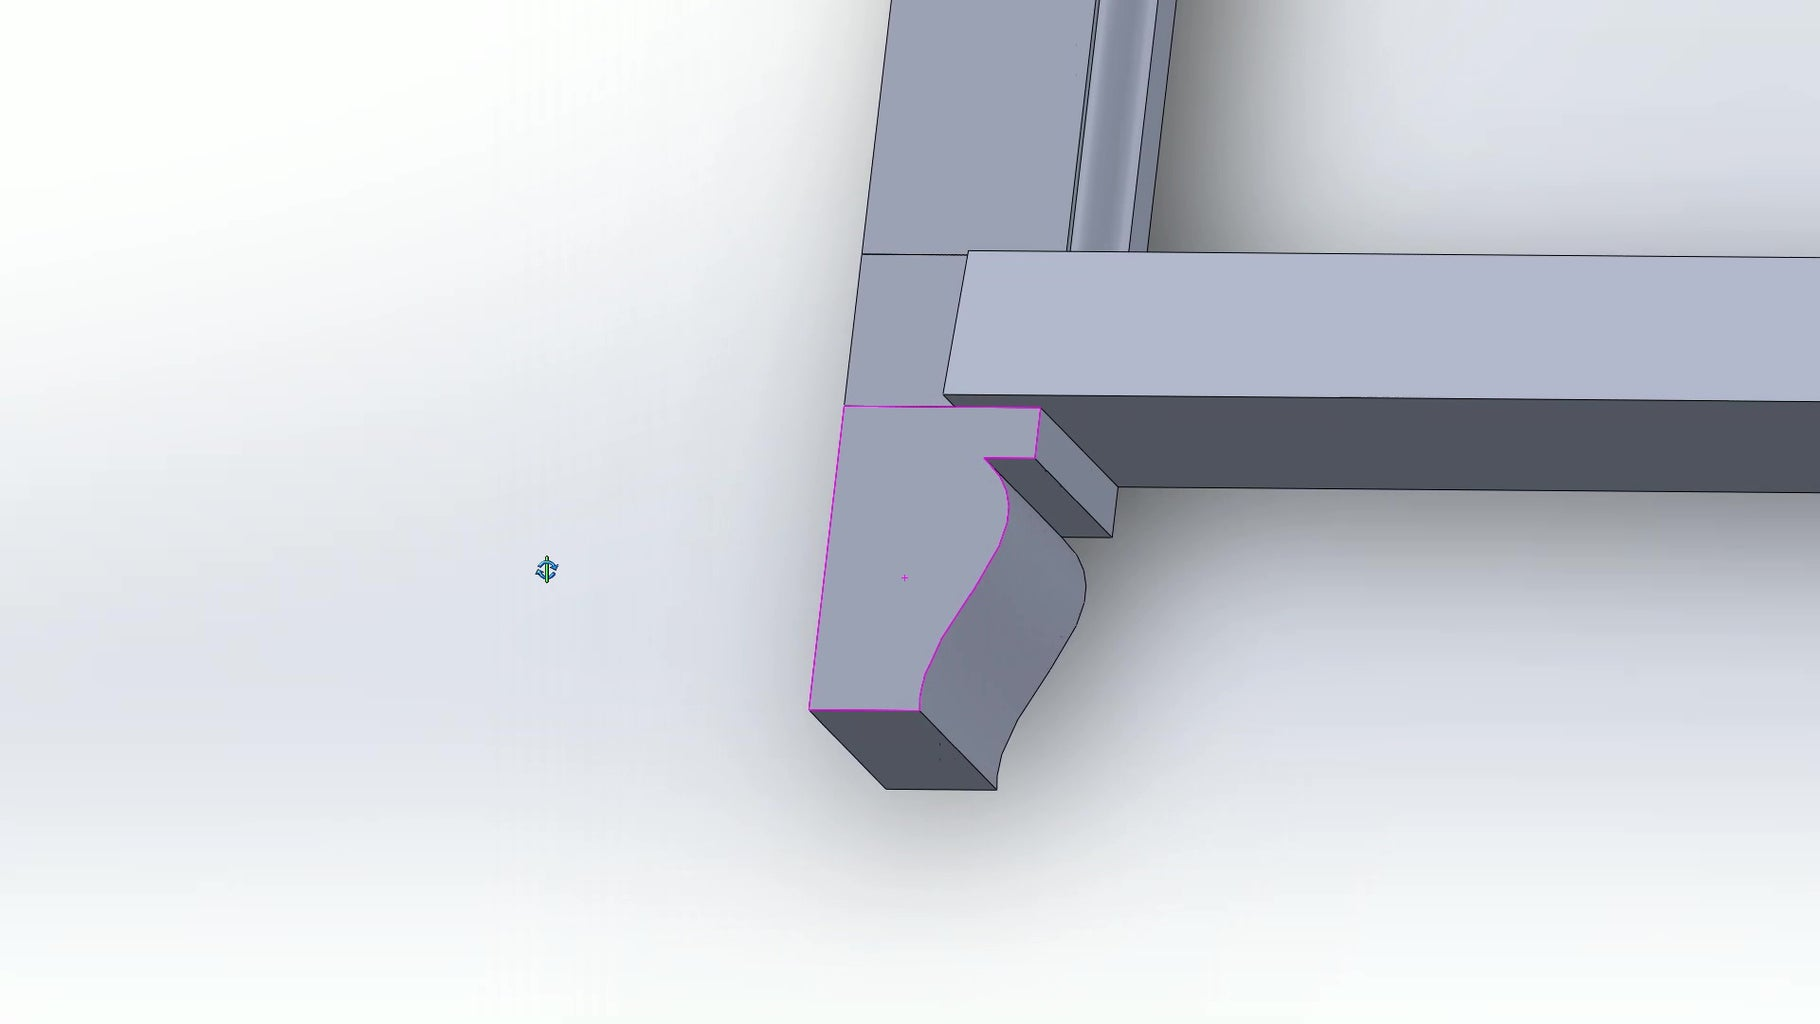 Design and Layout the Molding